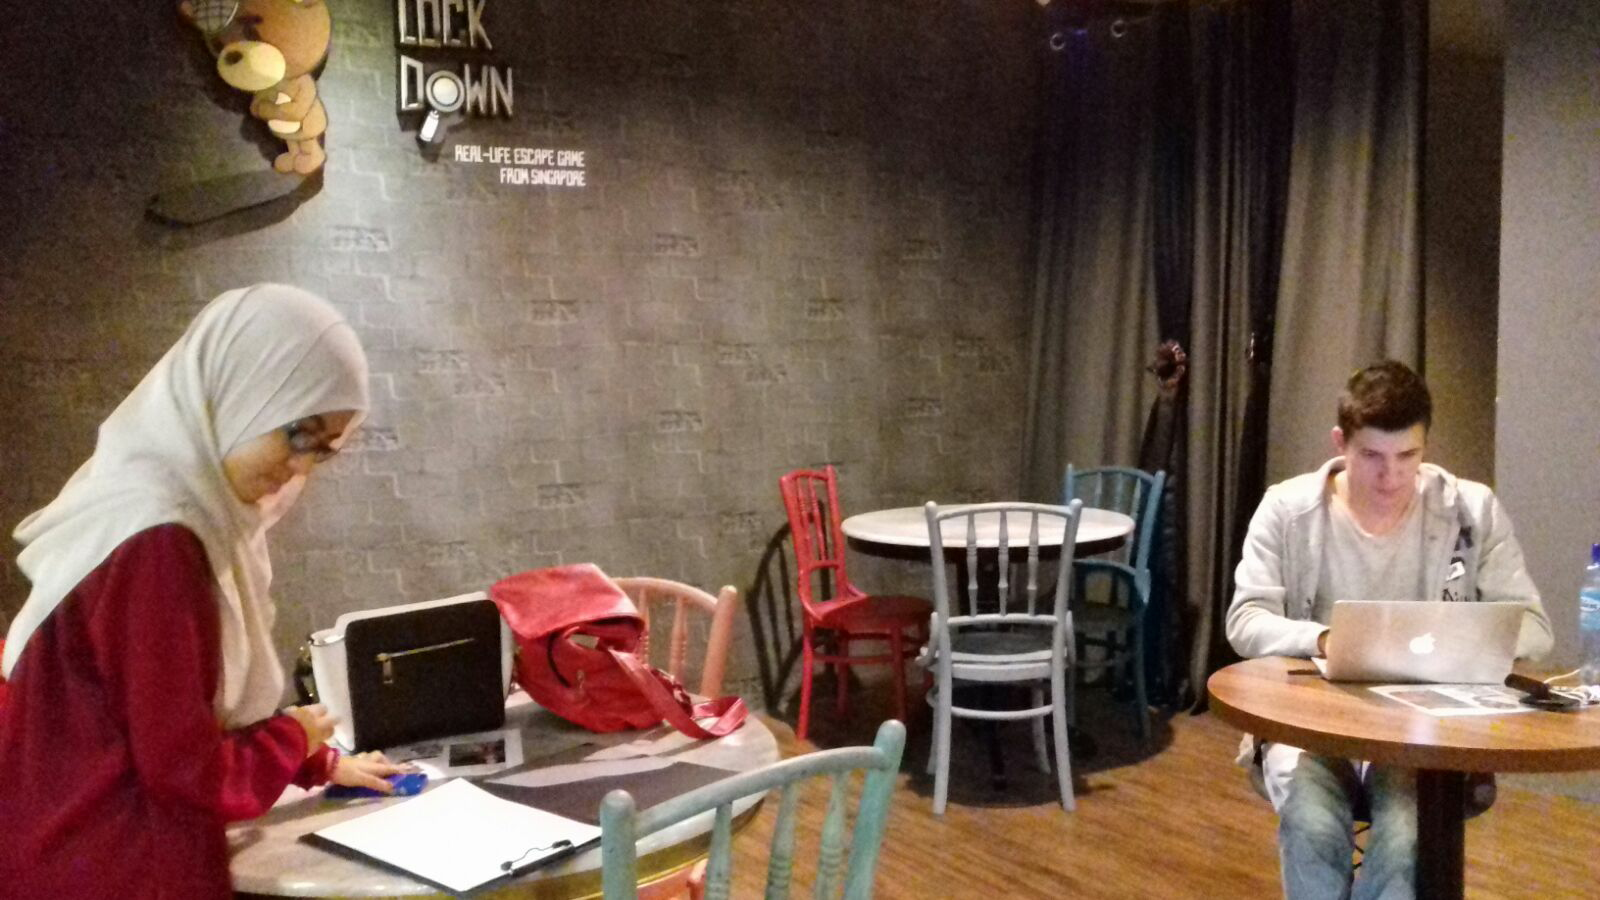 Lockdown: Real-Life Escape Game from Singapore | MASSA UiTM Shah Alam